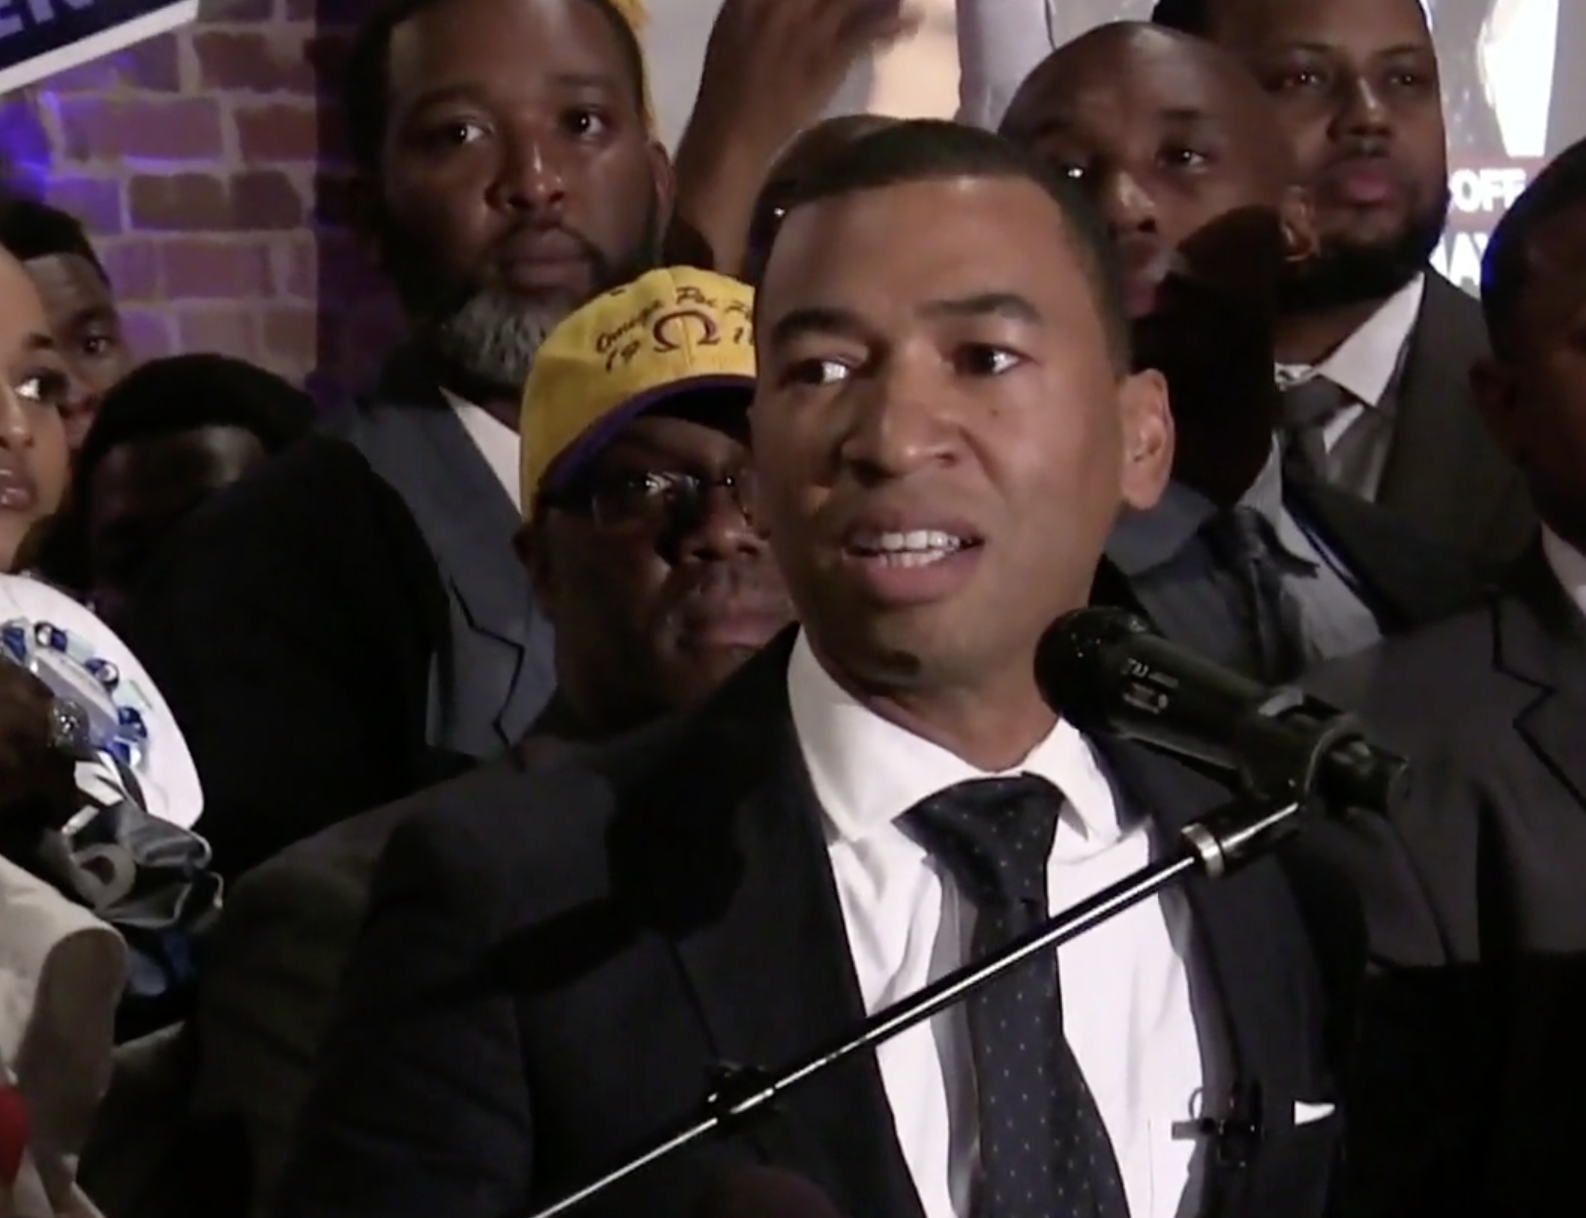 After 200 years, Montgomery, Alabama, has elected its first black mayor